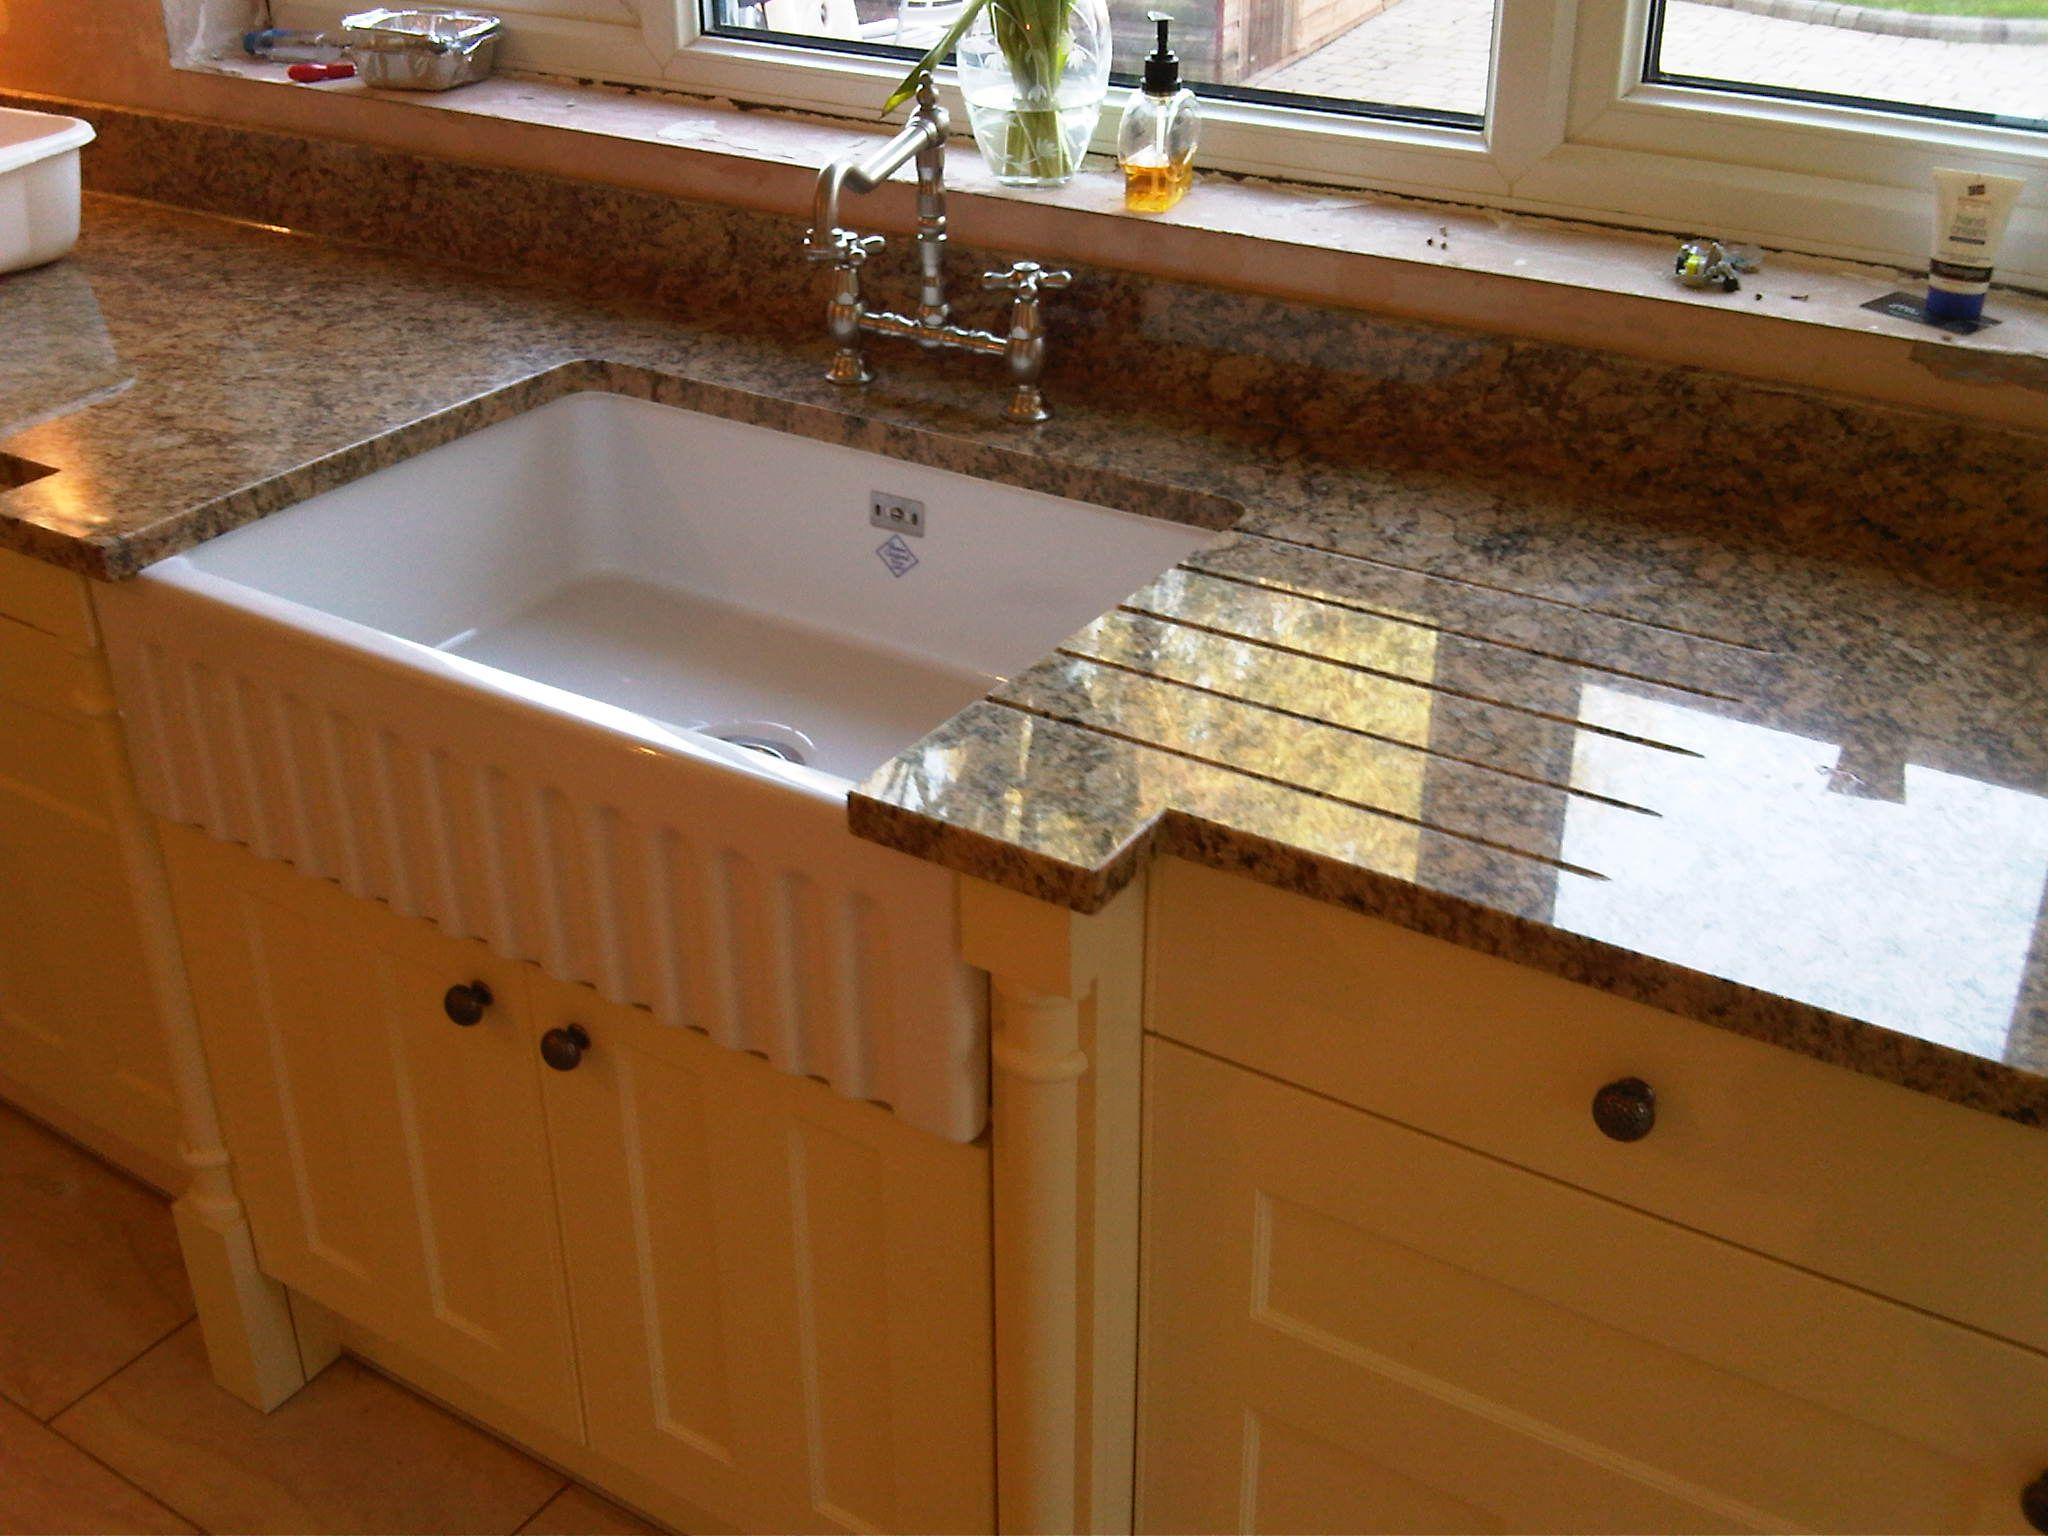 Granite Sink India : ... tones facts kitchens stones granite kitchen sinks brown granite